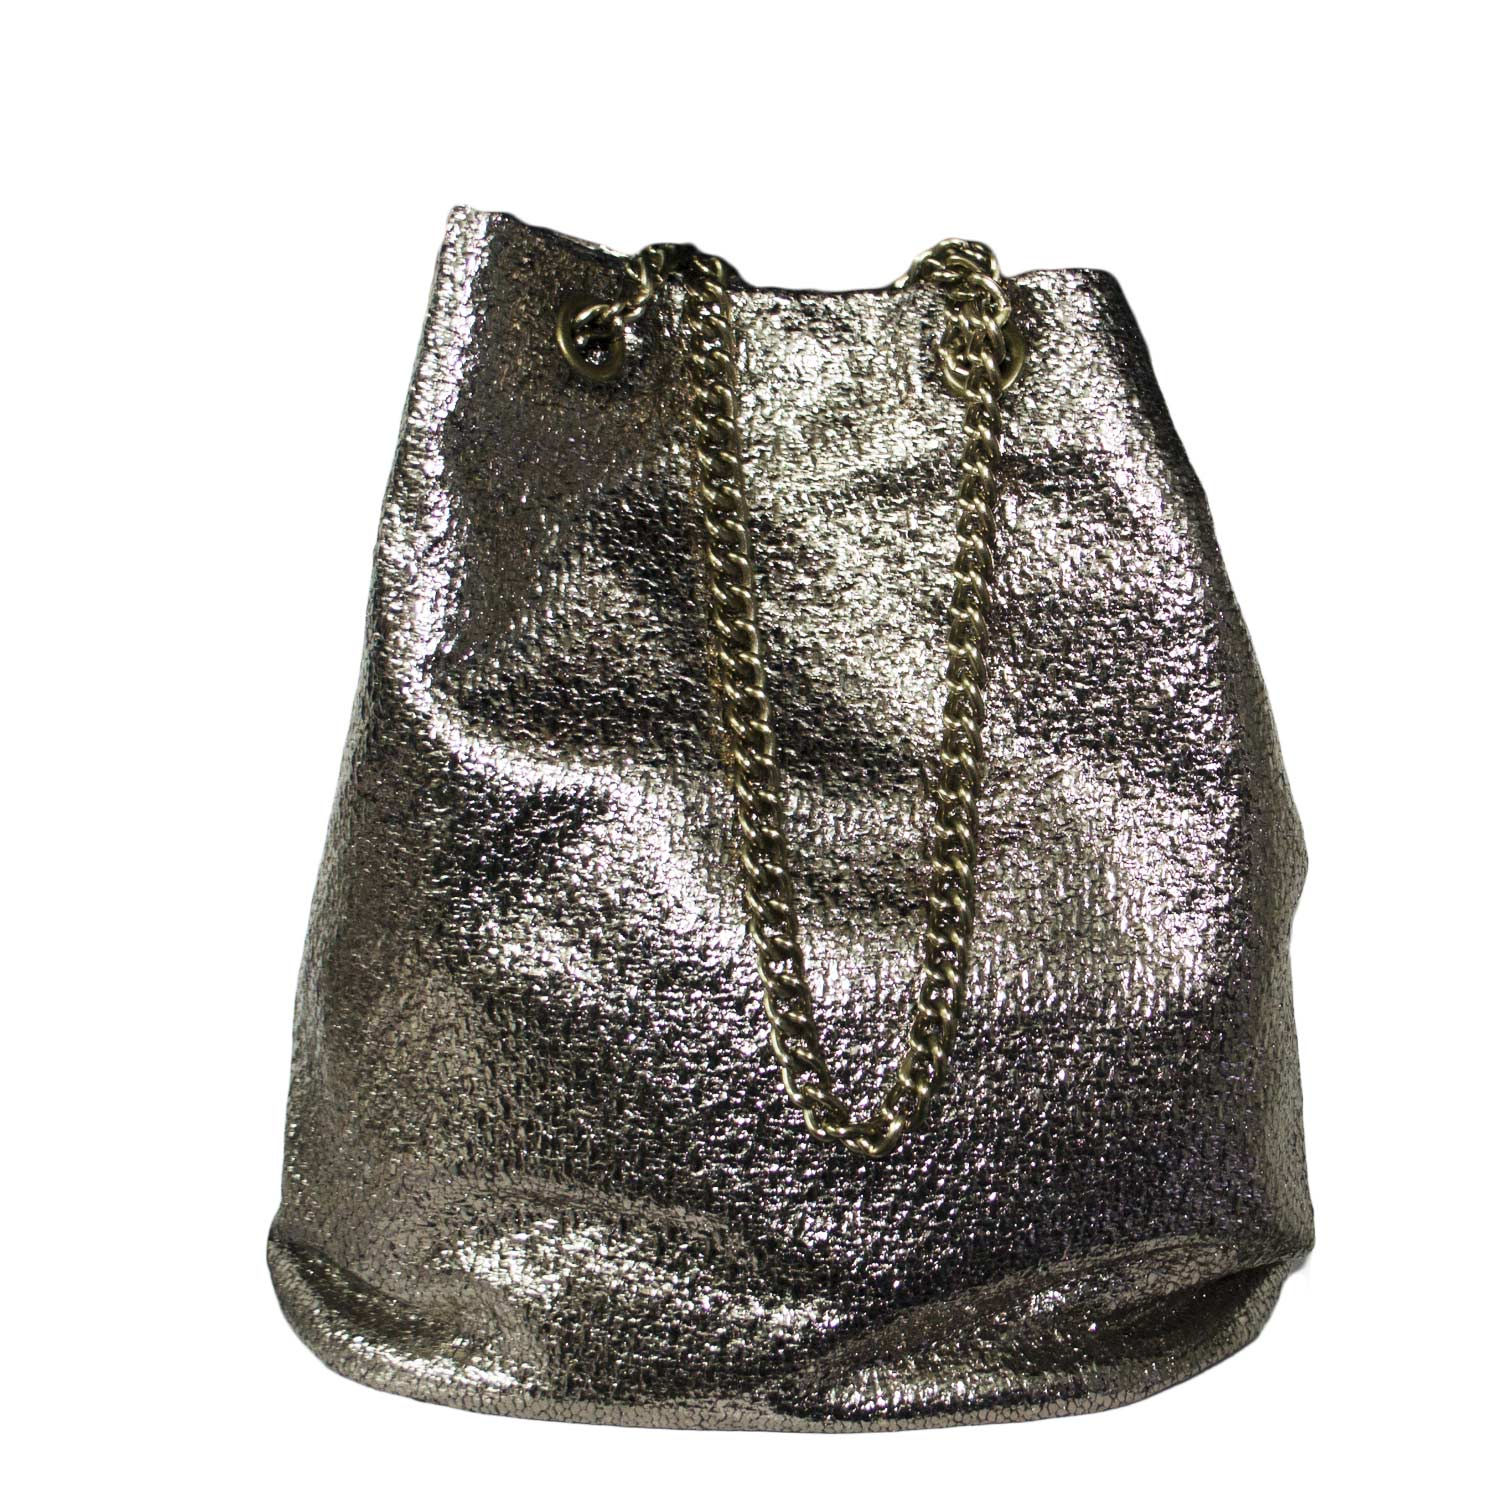 Borsa art 324 sacco donna laminato oro made in italy moda glamour very cool.